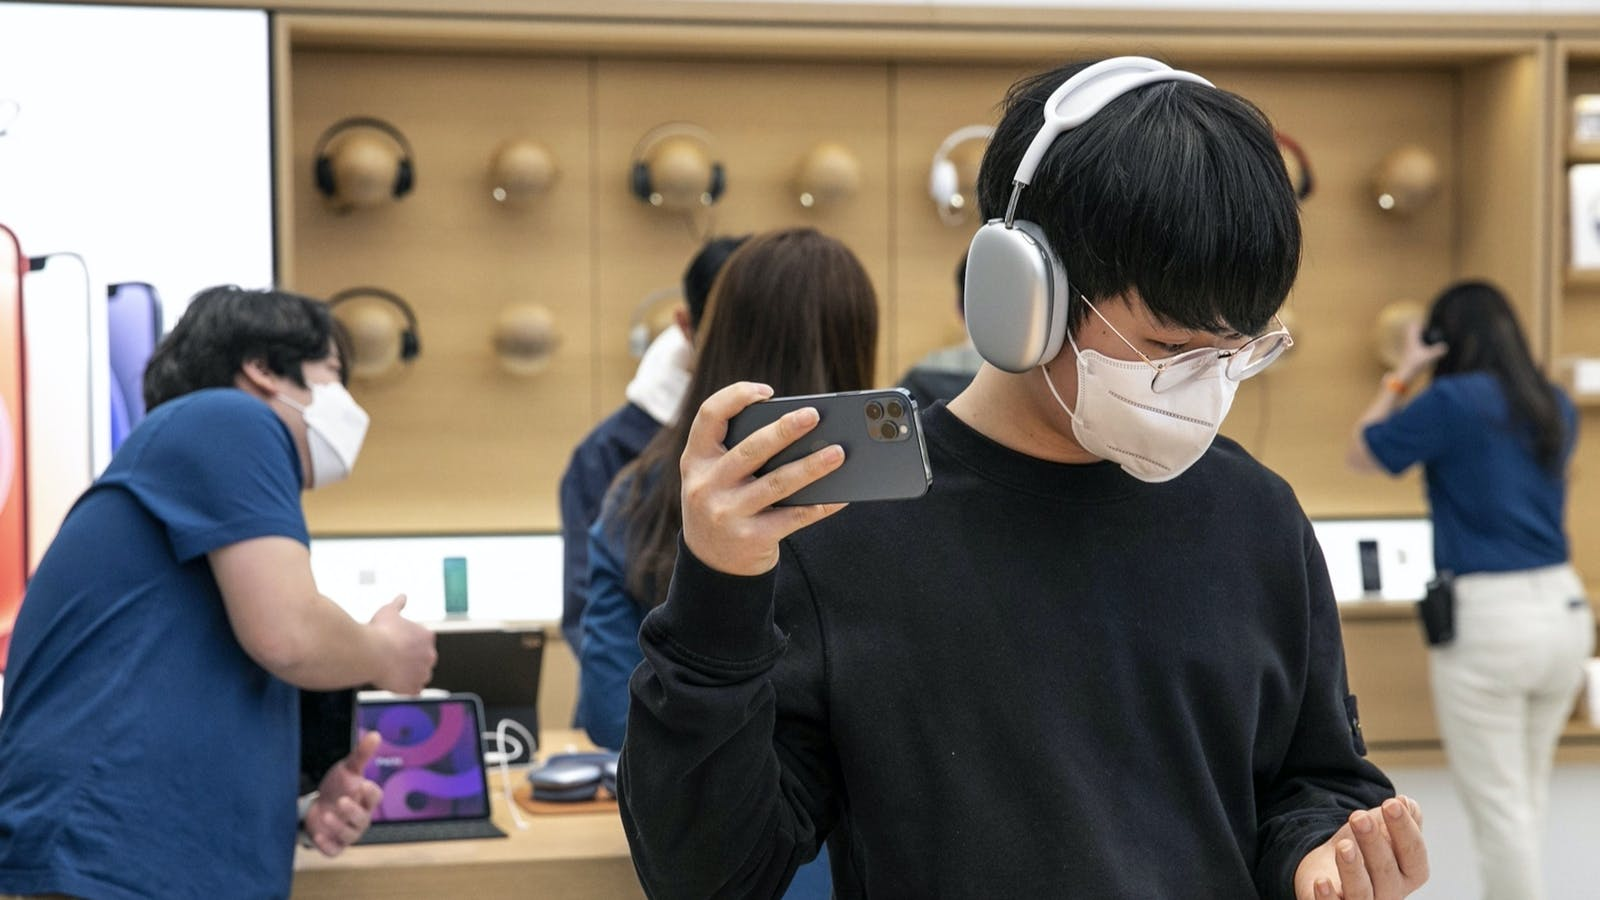 A customer wearing a pair of AirPods Max headphones at an Apple store in South Korea. Photo by Bloomberg